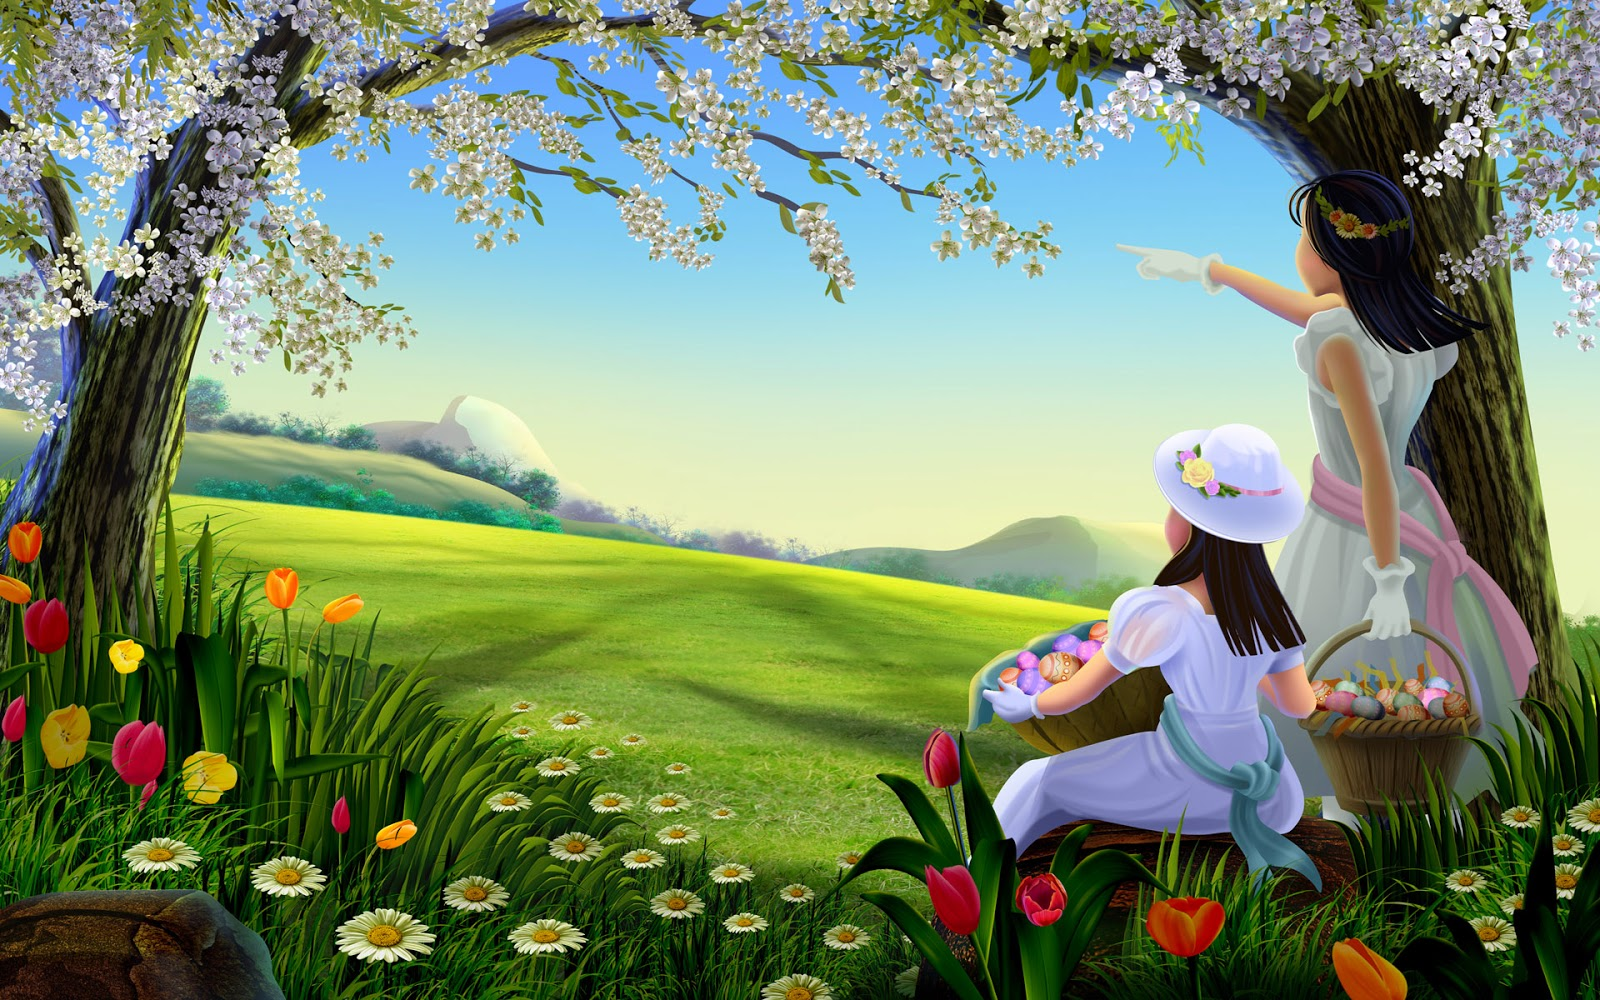 Wallpapers Download for PC Desktop Laptop Mobile Phone   Photo 1600x1000